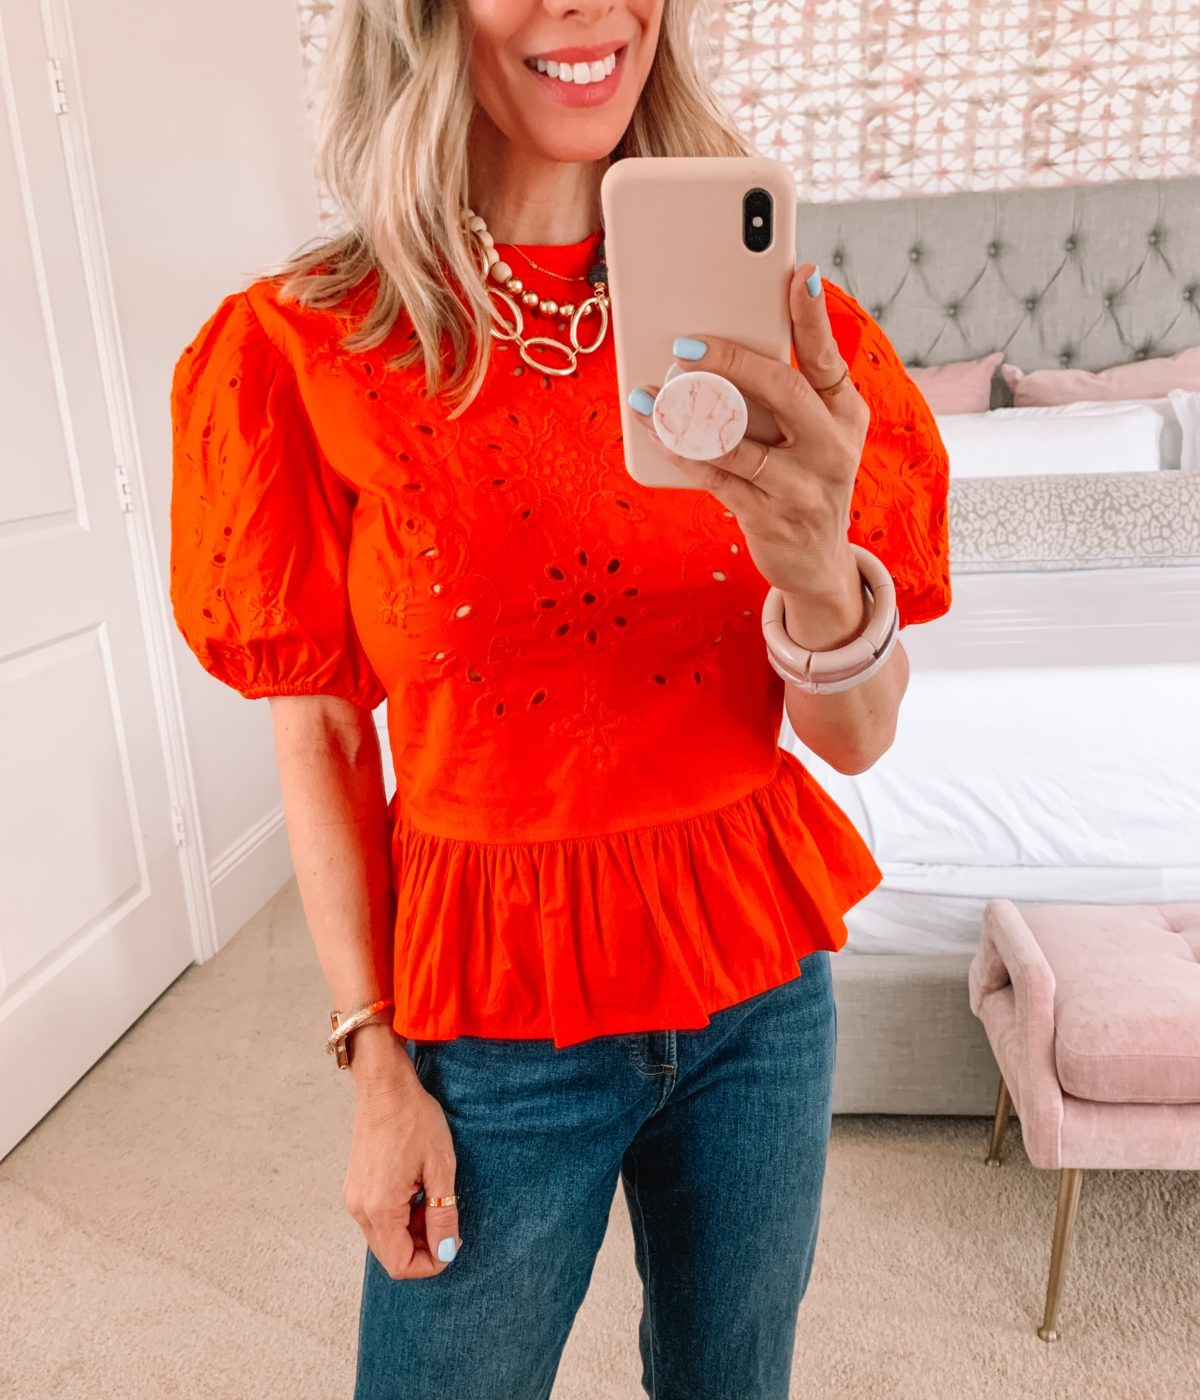 Dressing Room Finds, Express, Red Eyelet Top, Wide Leg Jeans and Sandals